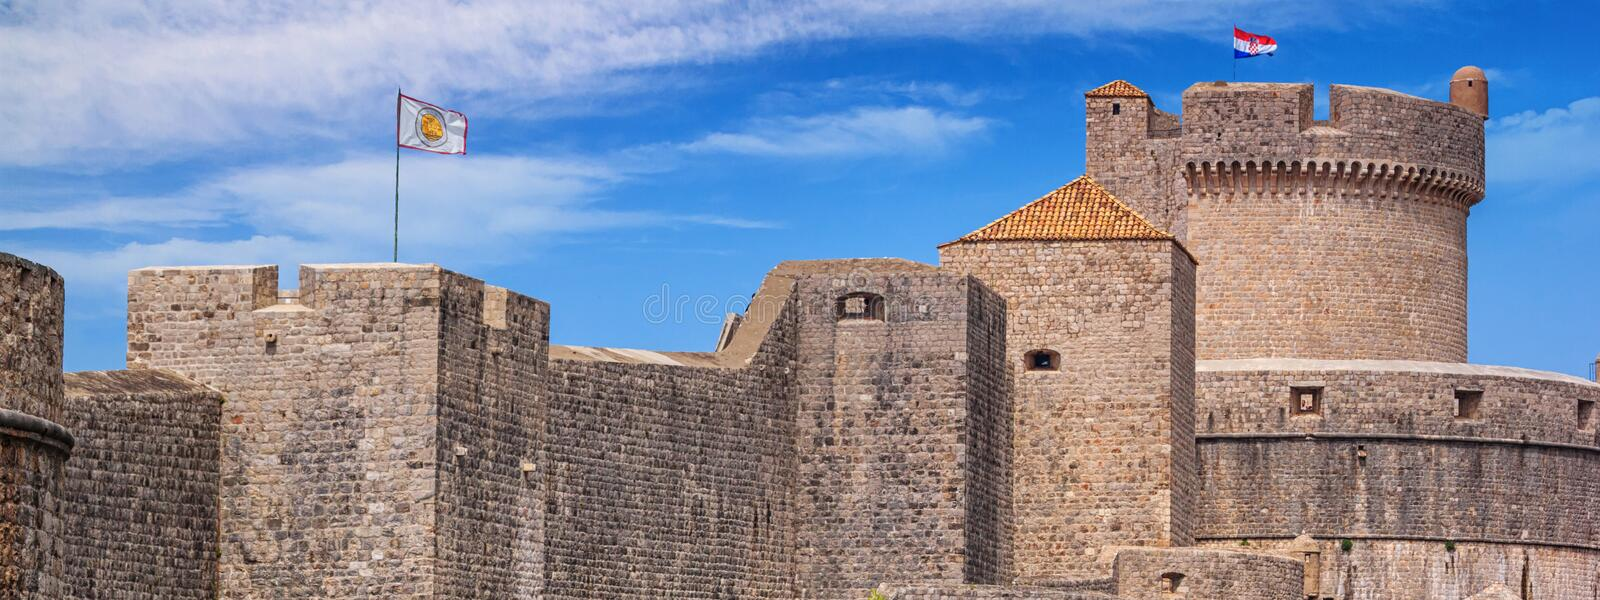 City summer landscape, banner - view of the Minceta Tower and the Walls Old Town of Dubrovnik royalty free stock photography